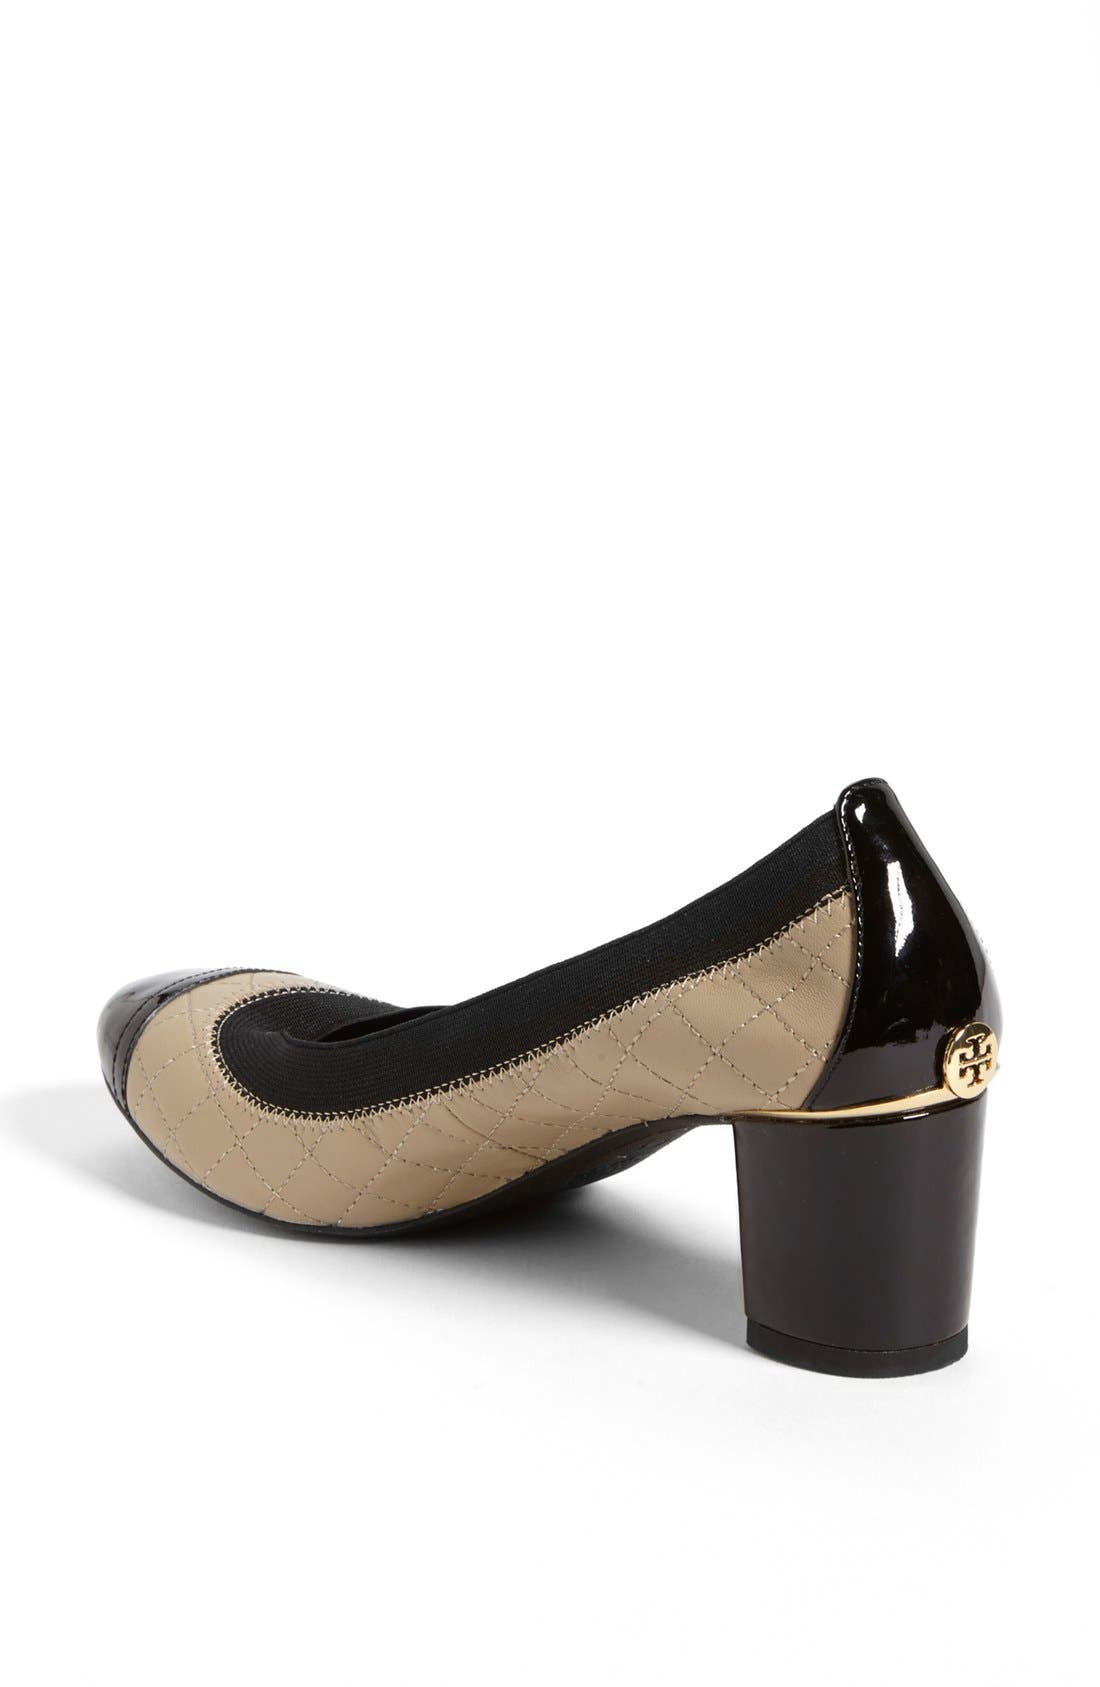 Alternate Image 2  - Tory Burch 'Carrie' Quilted Leather Cap Toe Pump